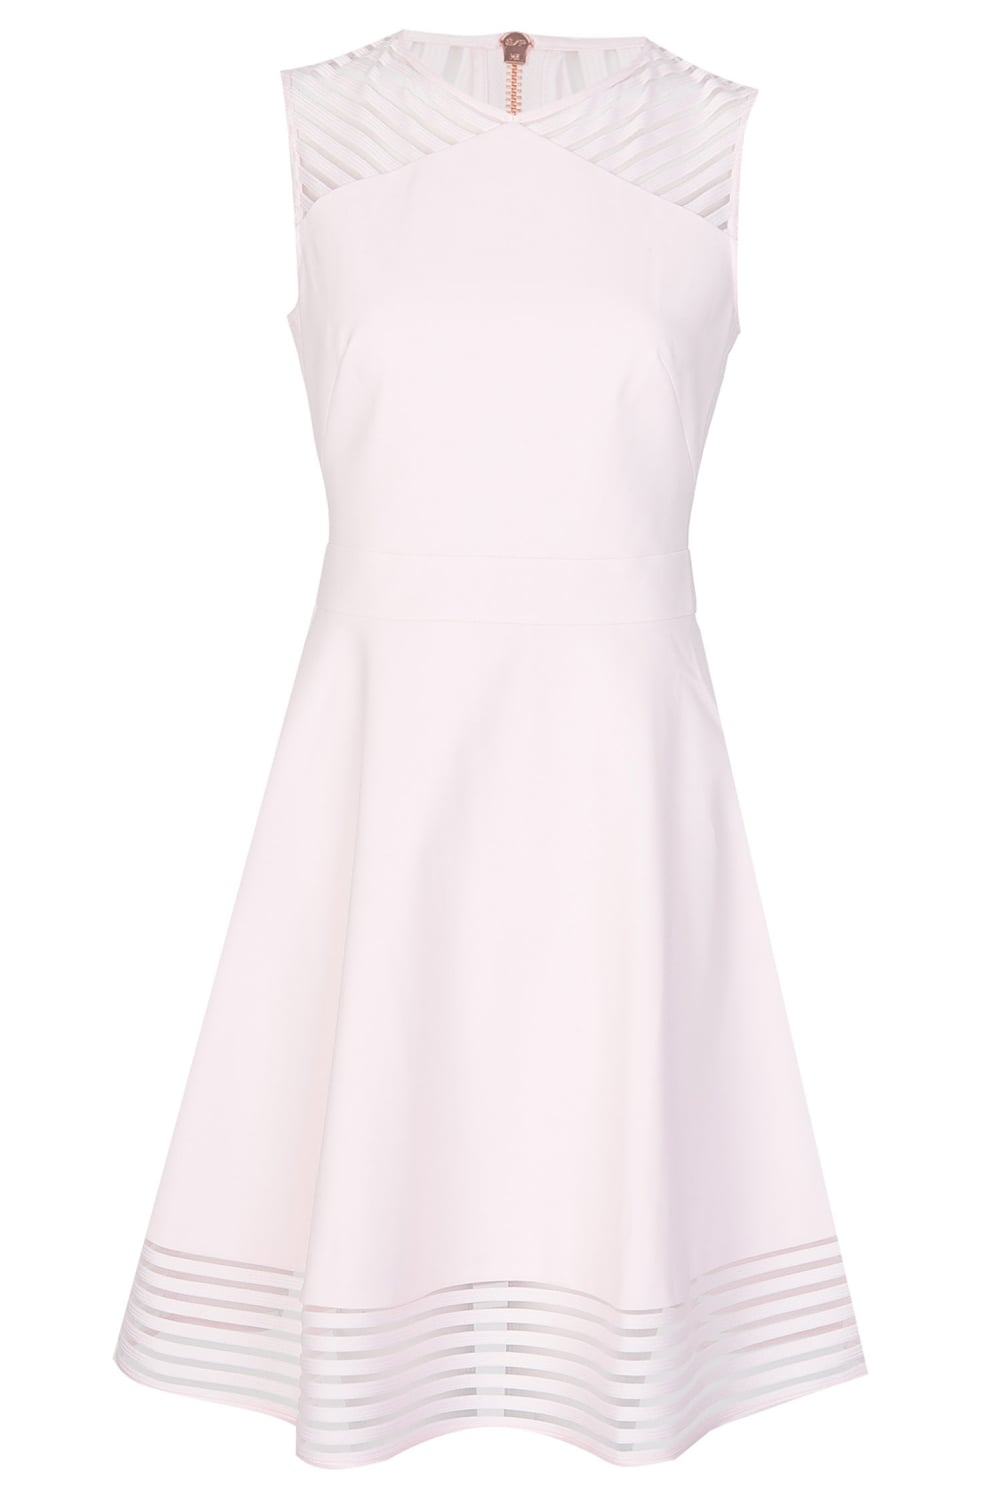 Ted Baker Pink Dress